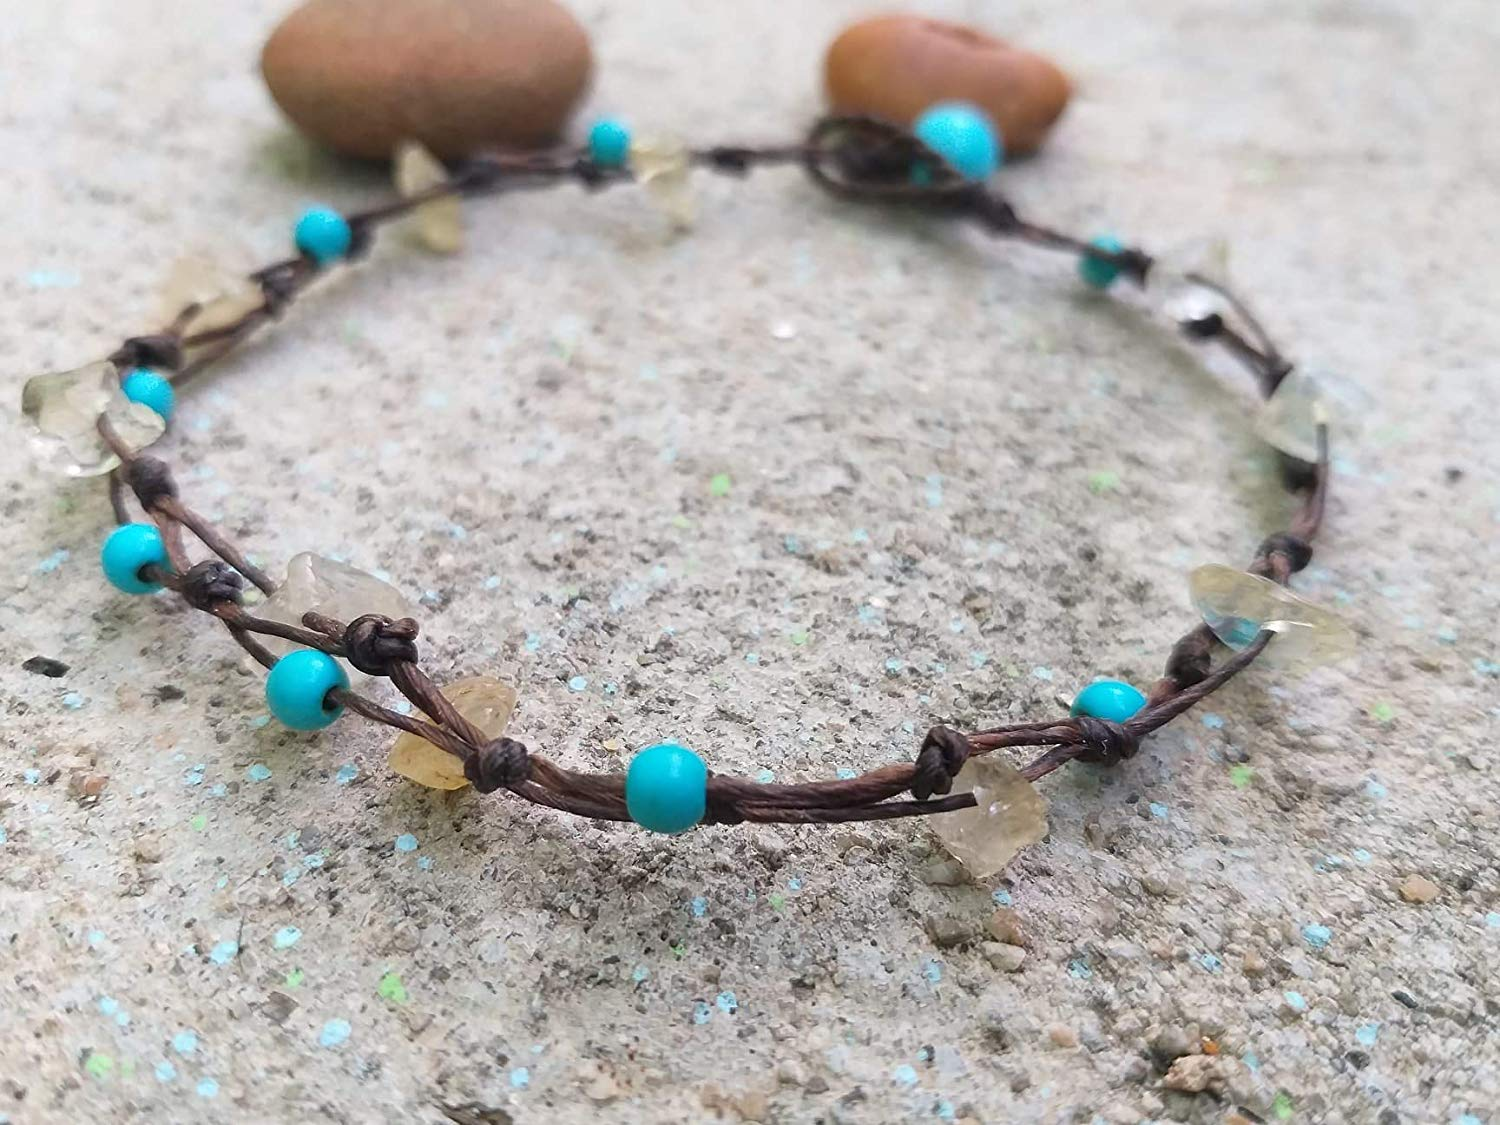 Anklets,Citrine stone anklets, Turquoise stone anklets,It is fashionable for both women.